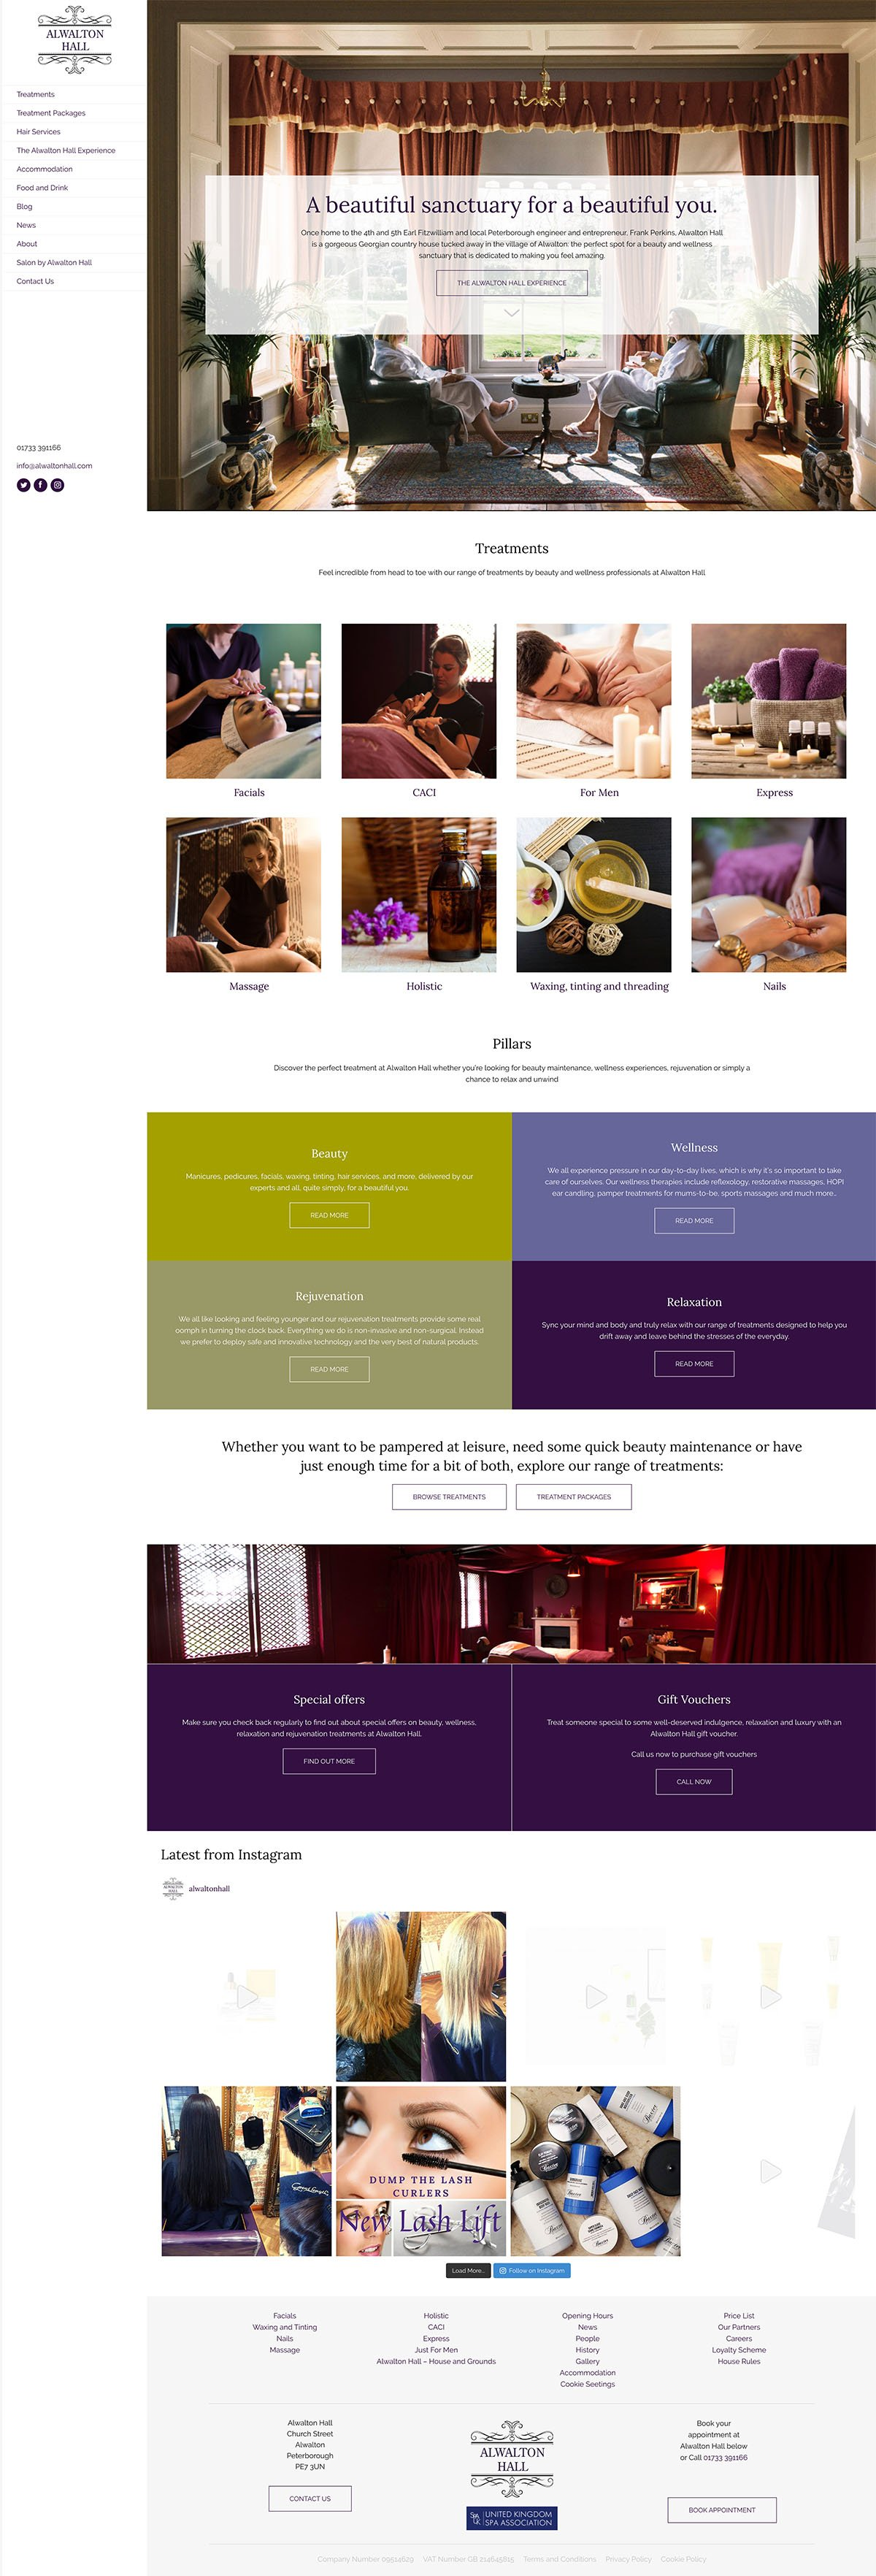 Alwalton Hall Homepage Screenshot